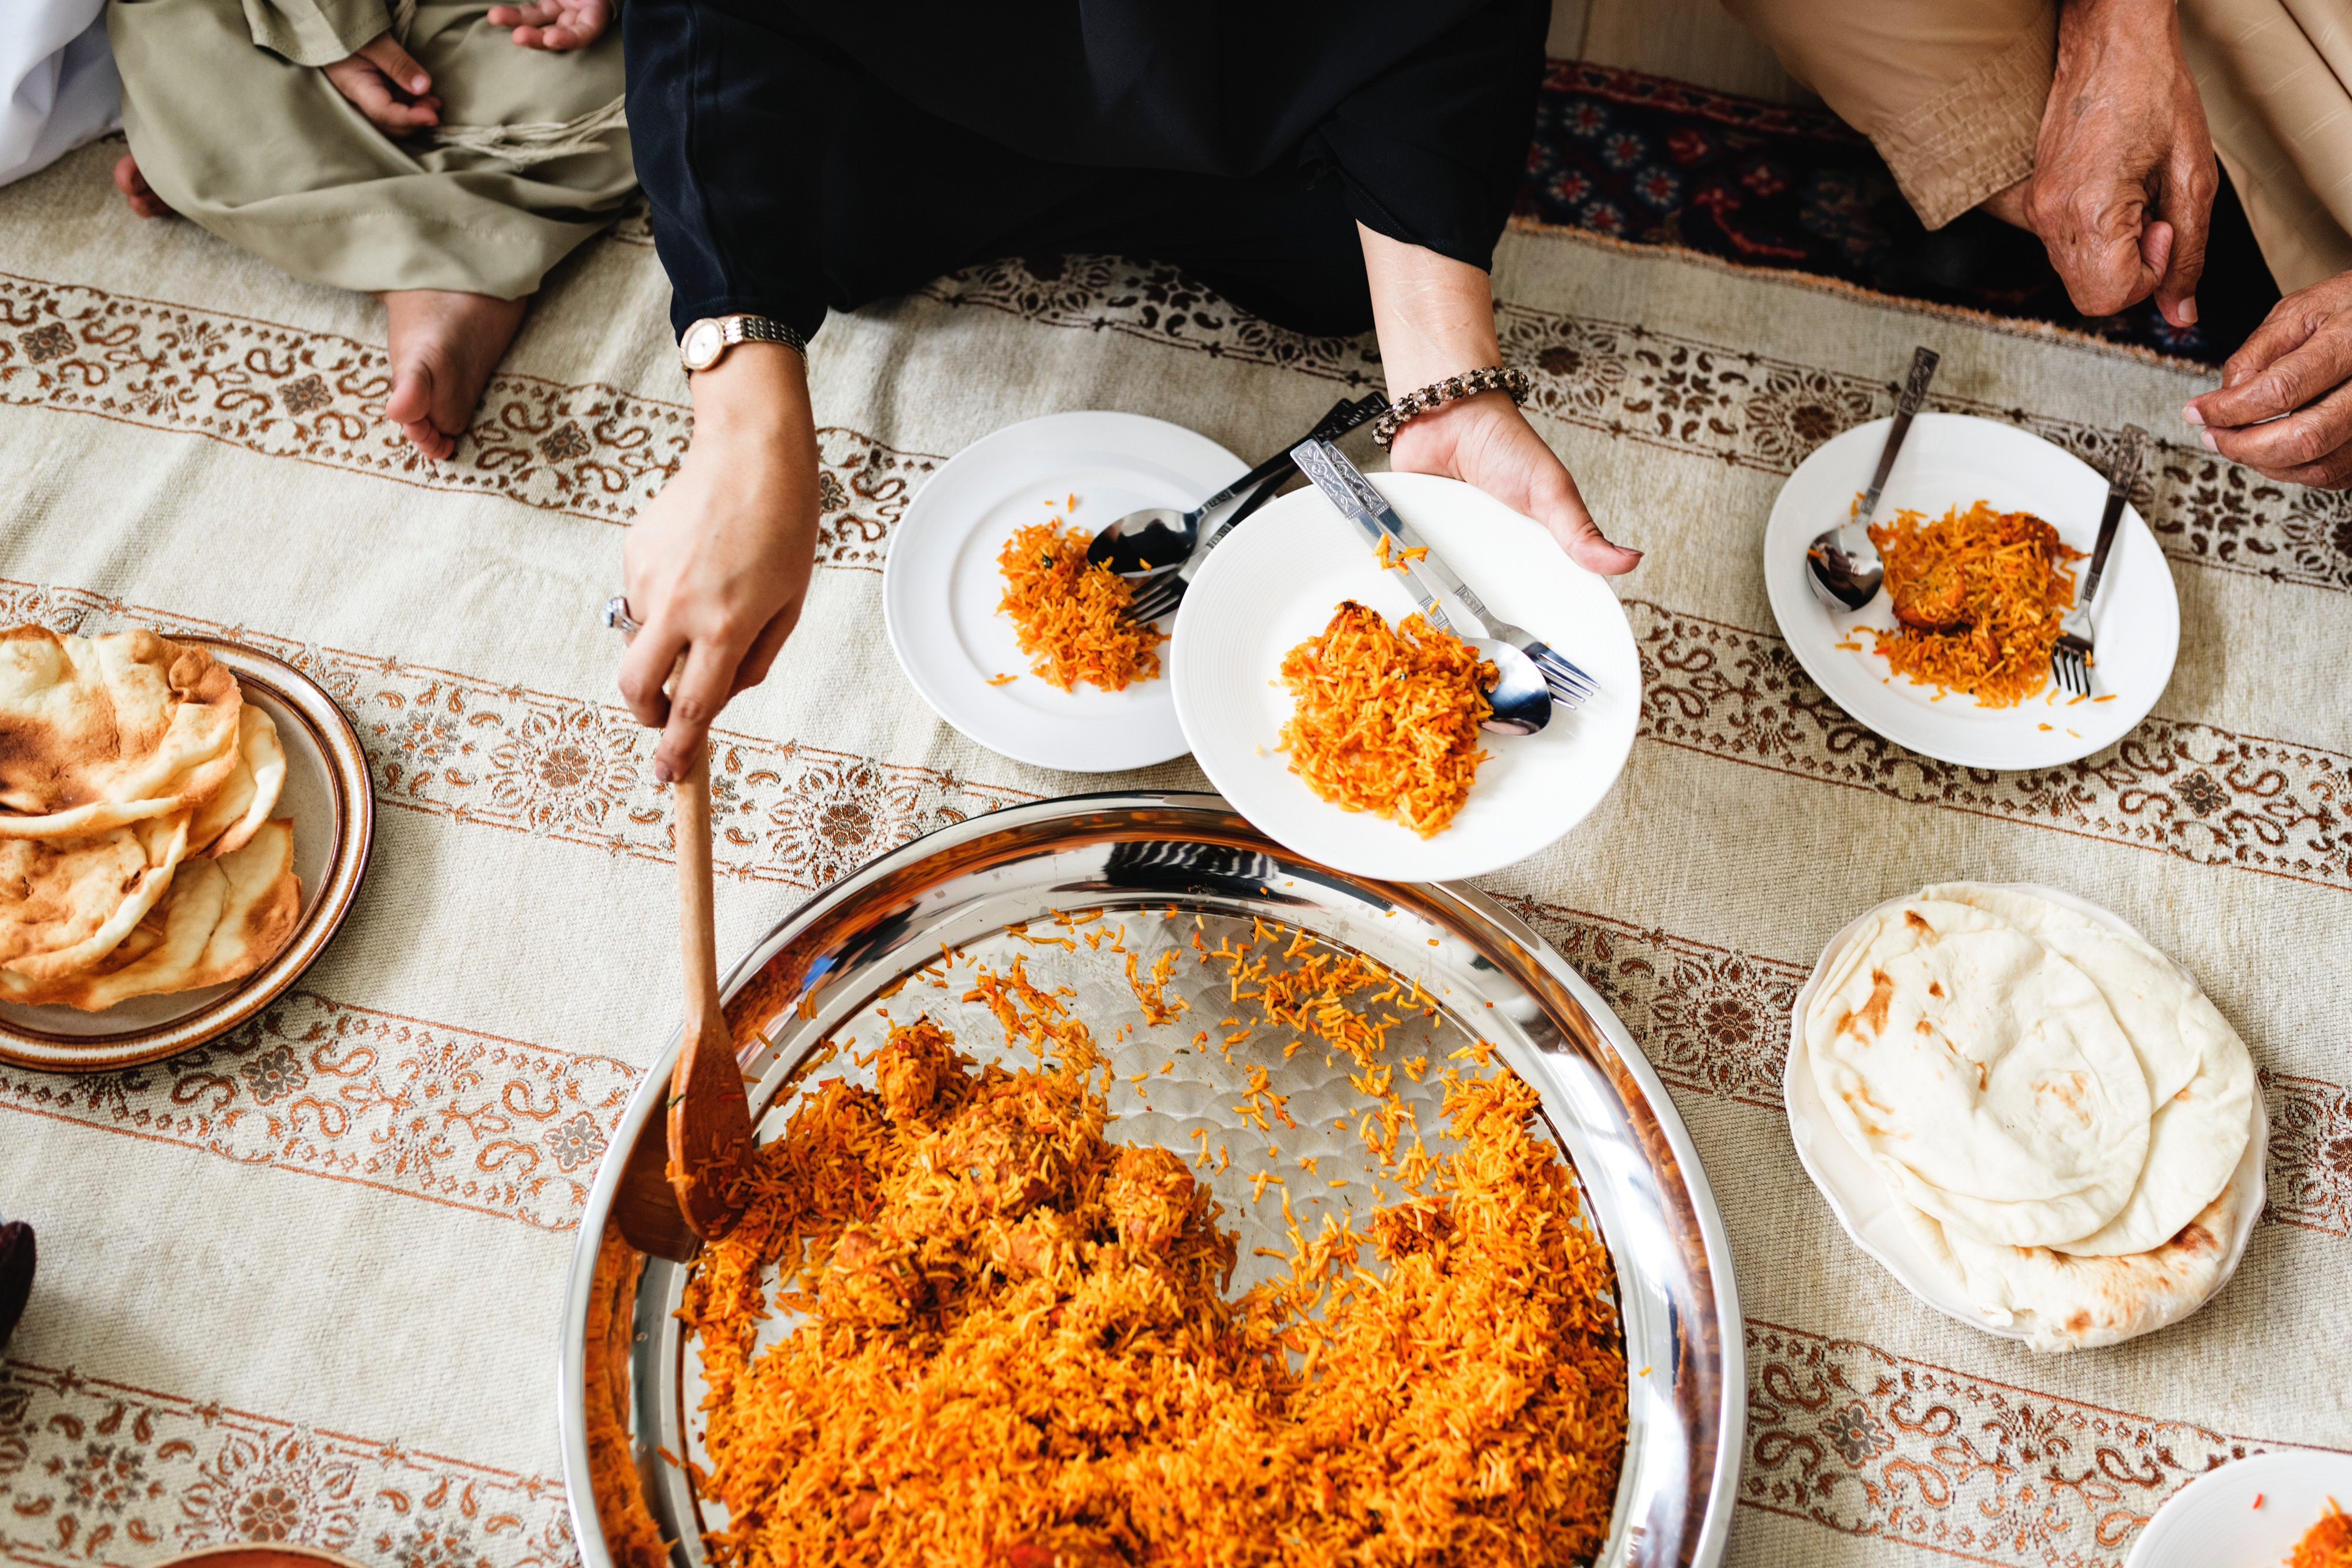 Woman serving rice onto a plate while sitting on a blanket on the floor.